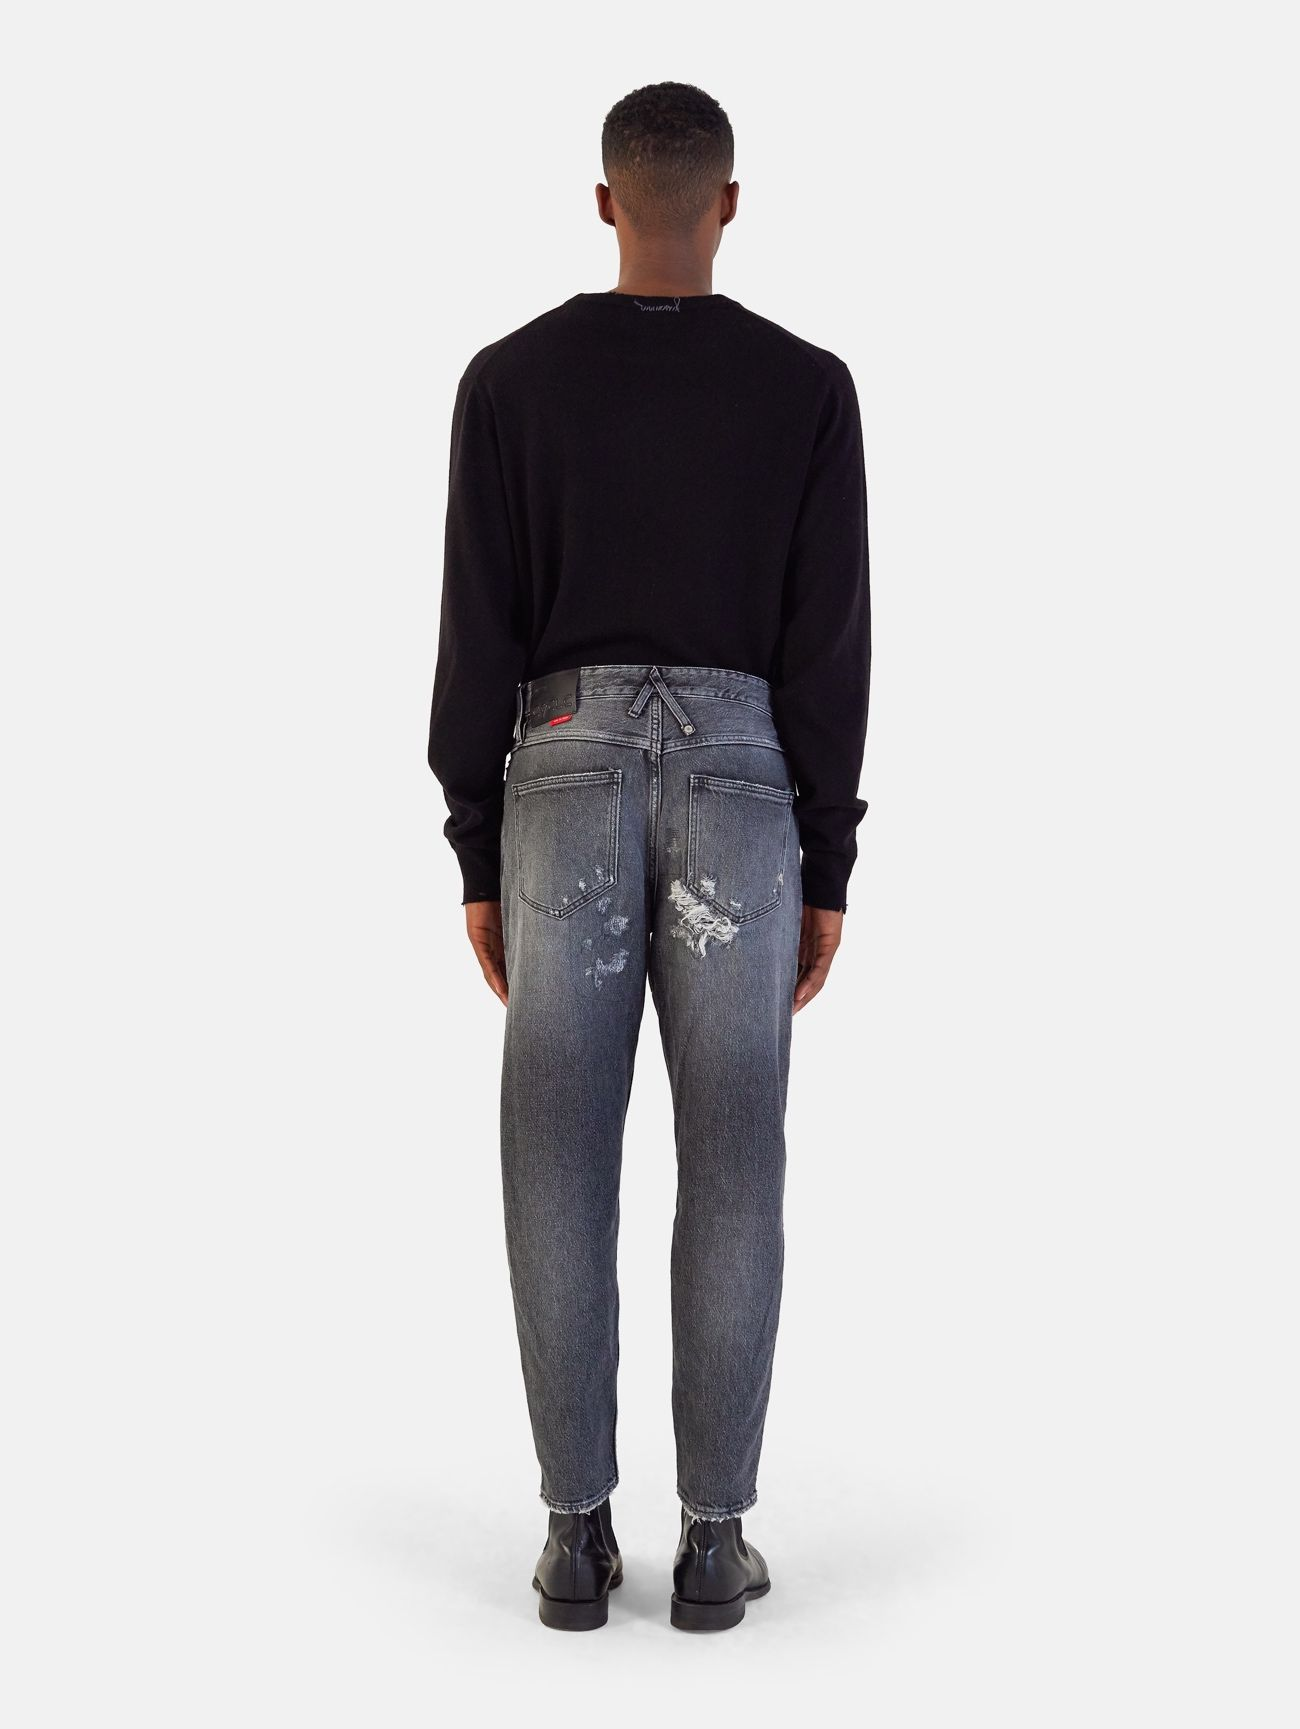 PONY CROPPED HAND MADE DESTROYED & REPAIRED GRIGIO SCURO